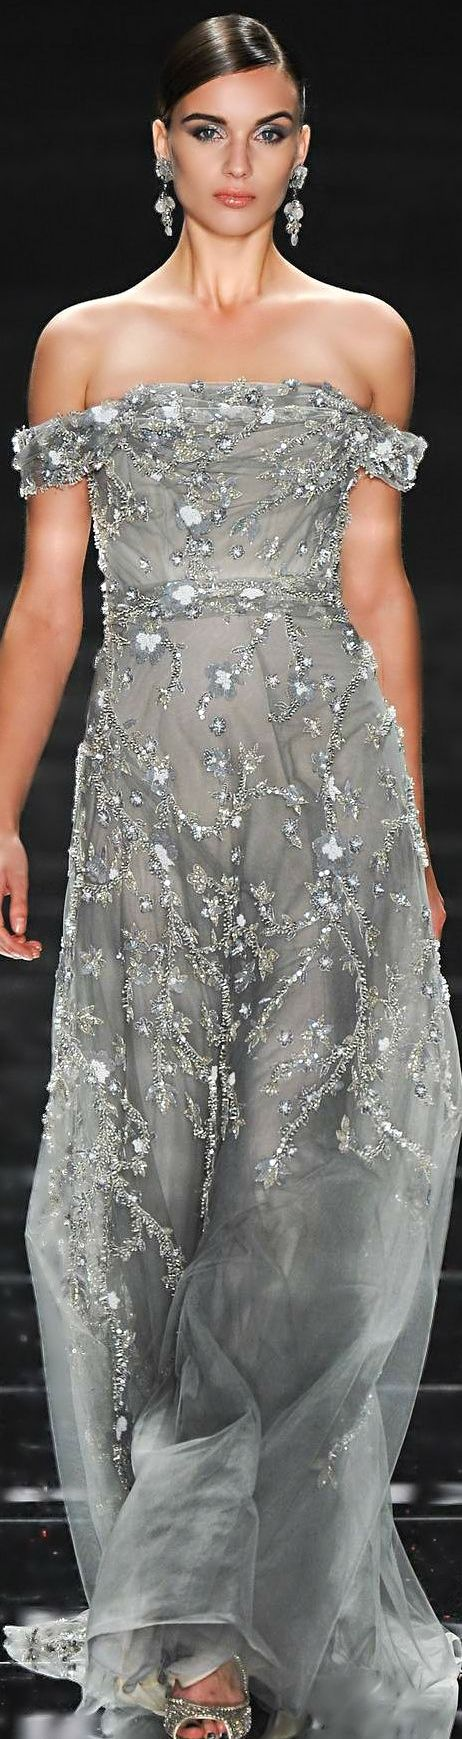 The  best images about Stlylin on Pinterest  Stone walkways Lace